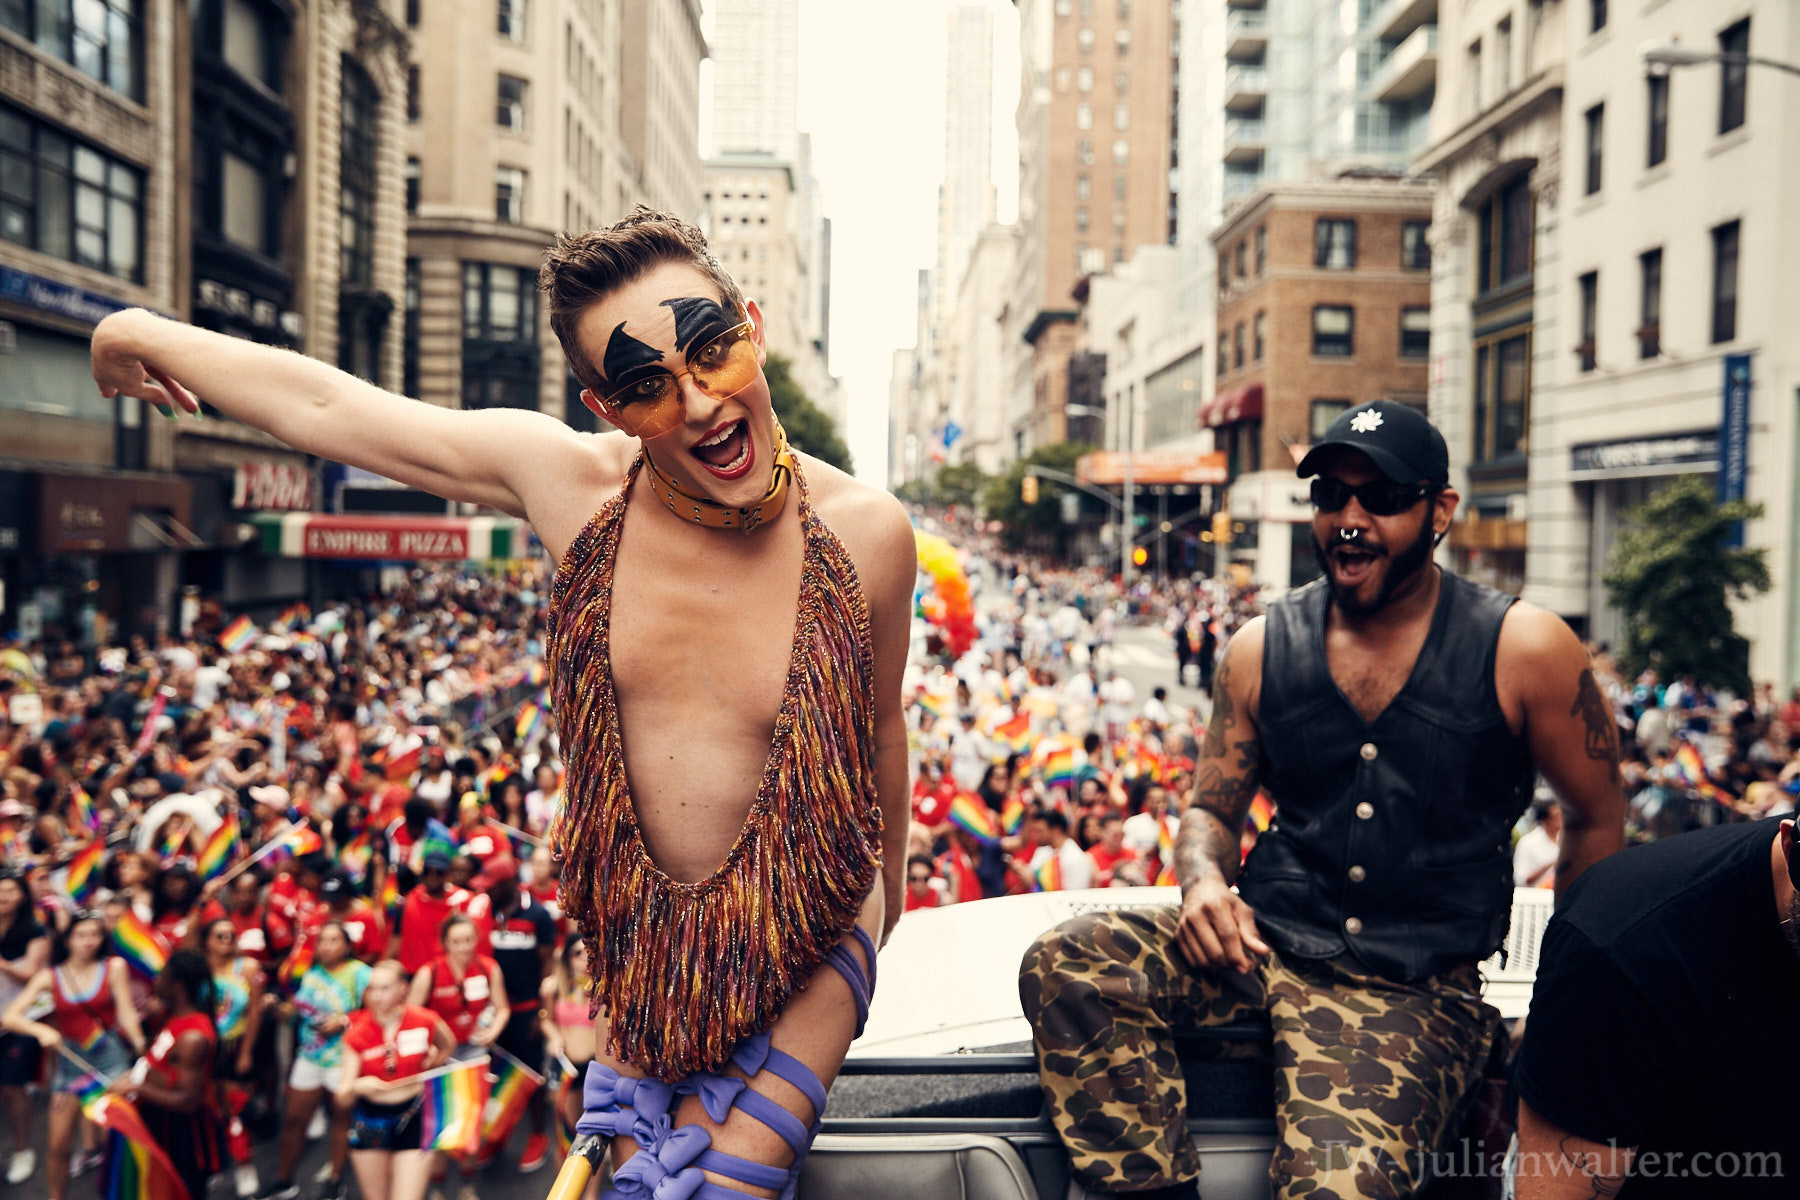 NYC Pride 2017 - Julian Walter Photography